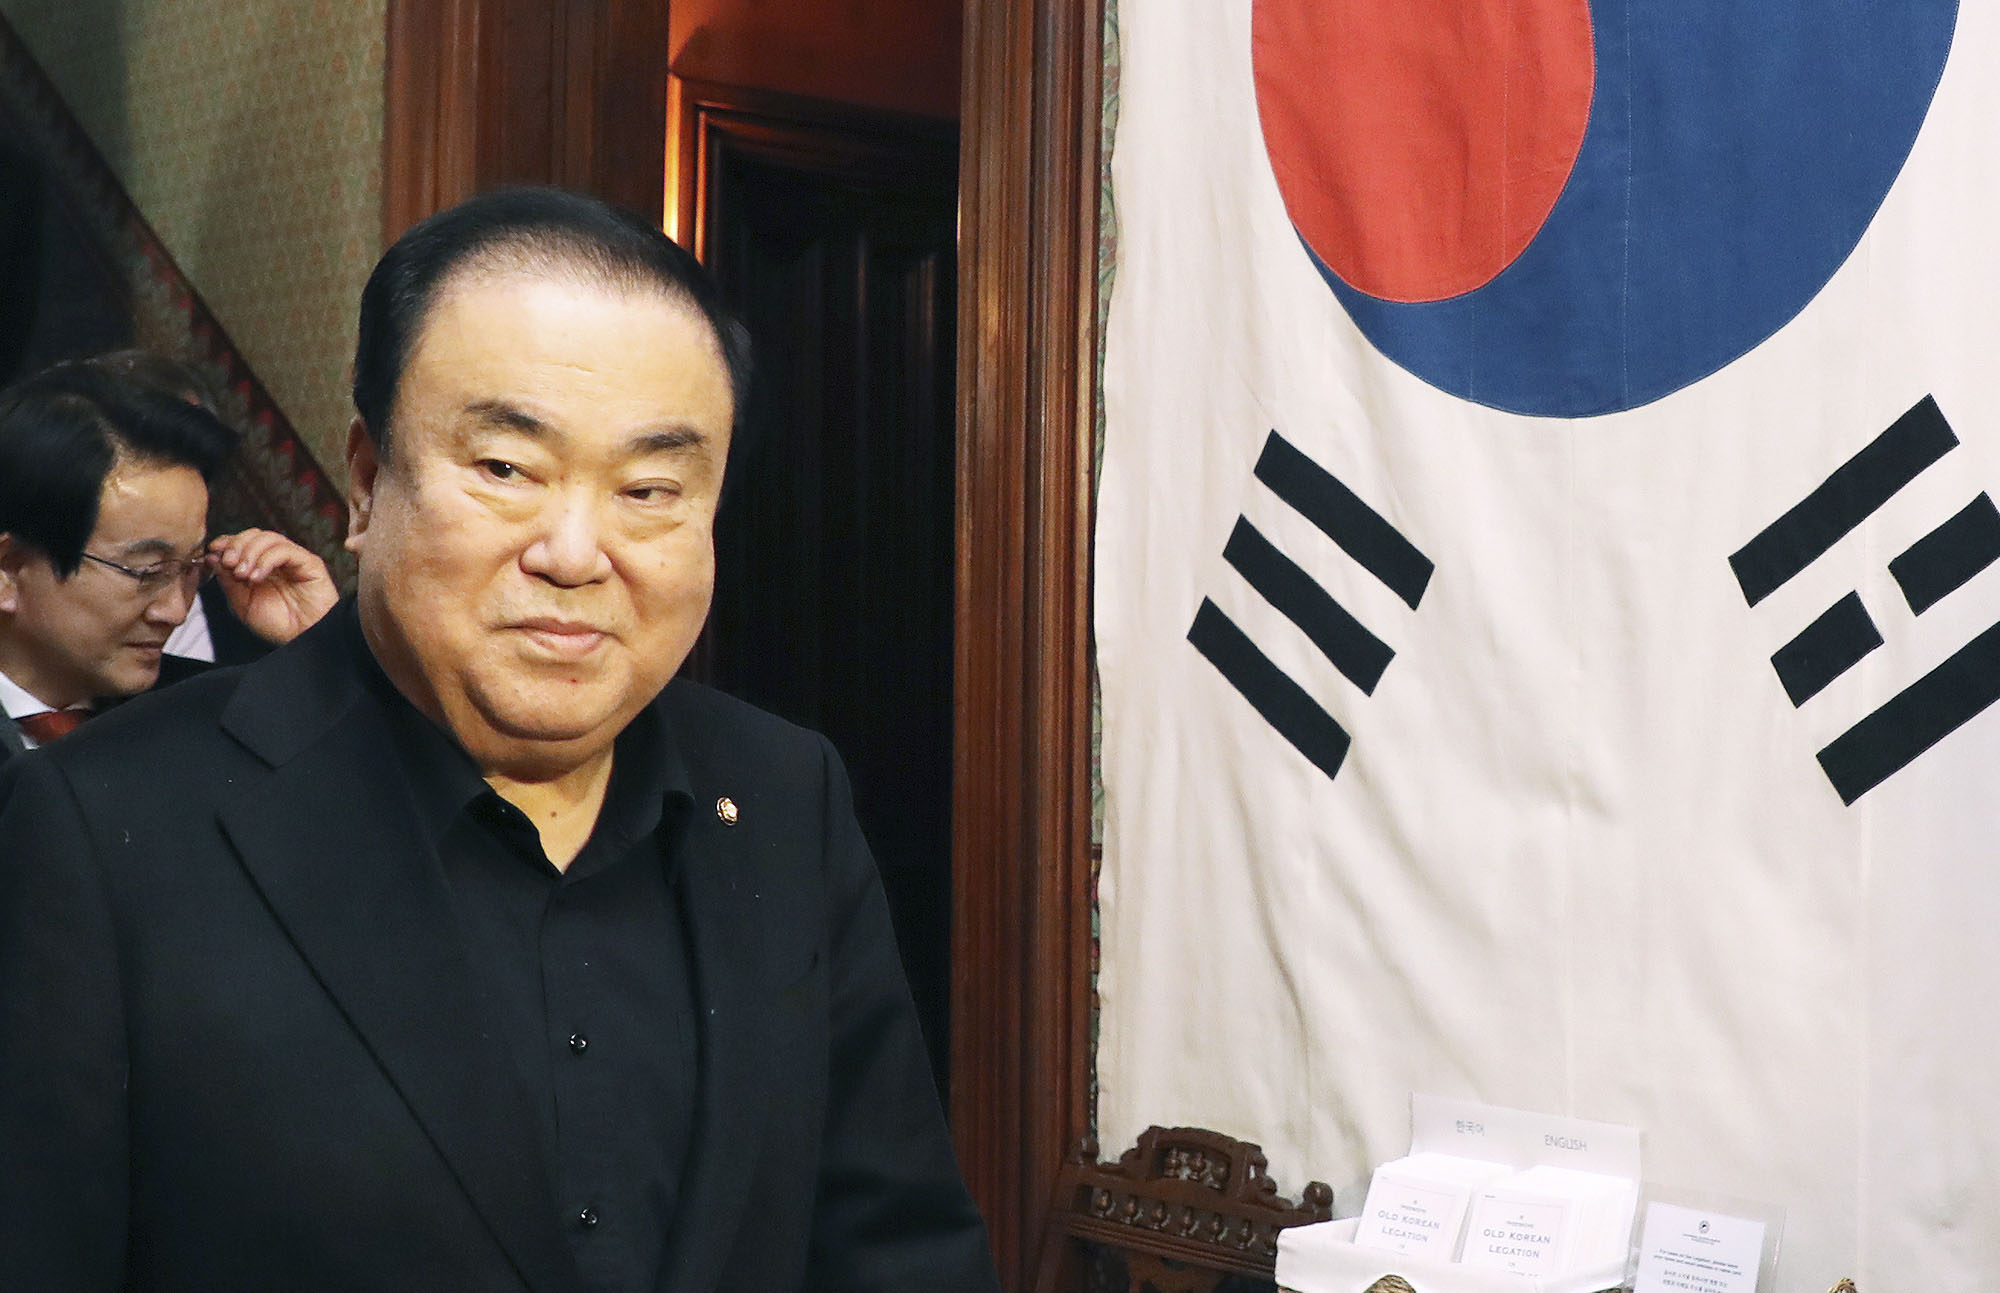 Moon Hee-sang, the speaker of South Korea's National Assembly, visits Washington earlier this month. | YONHAP / VIA KYODO